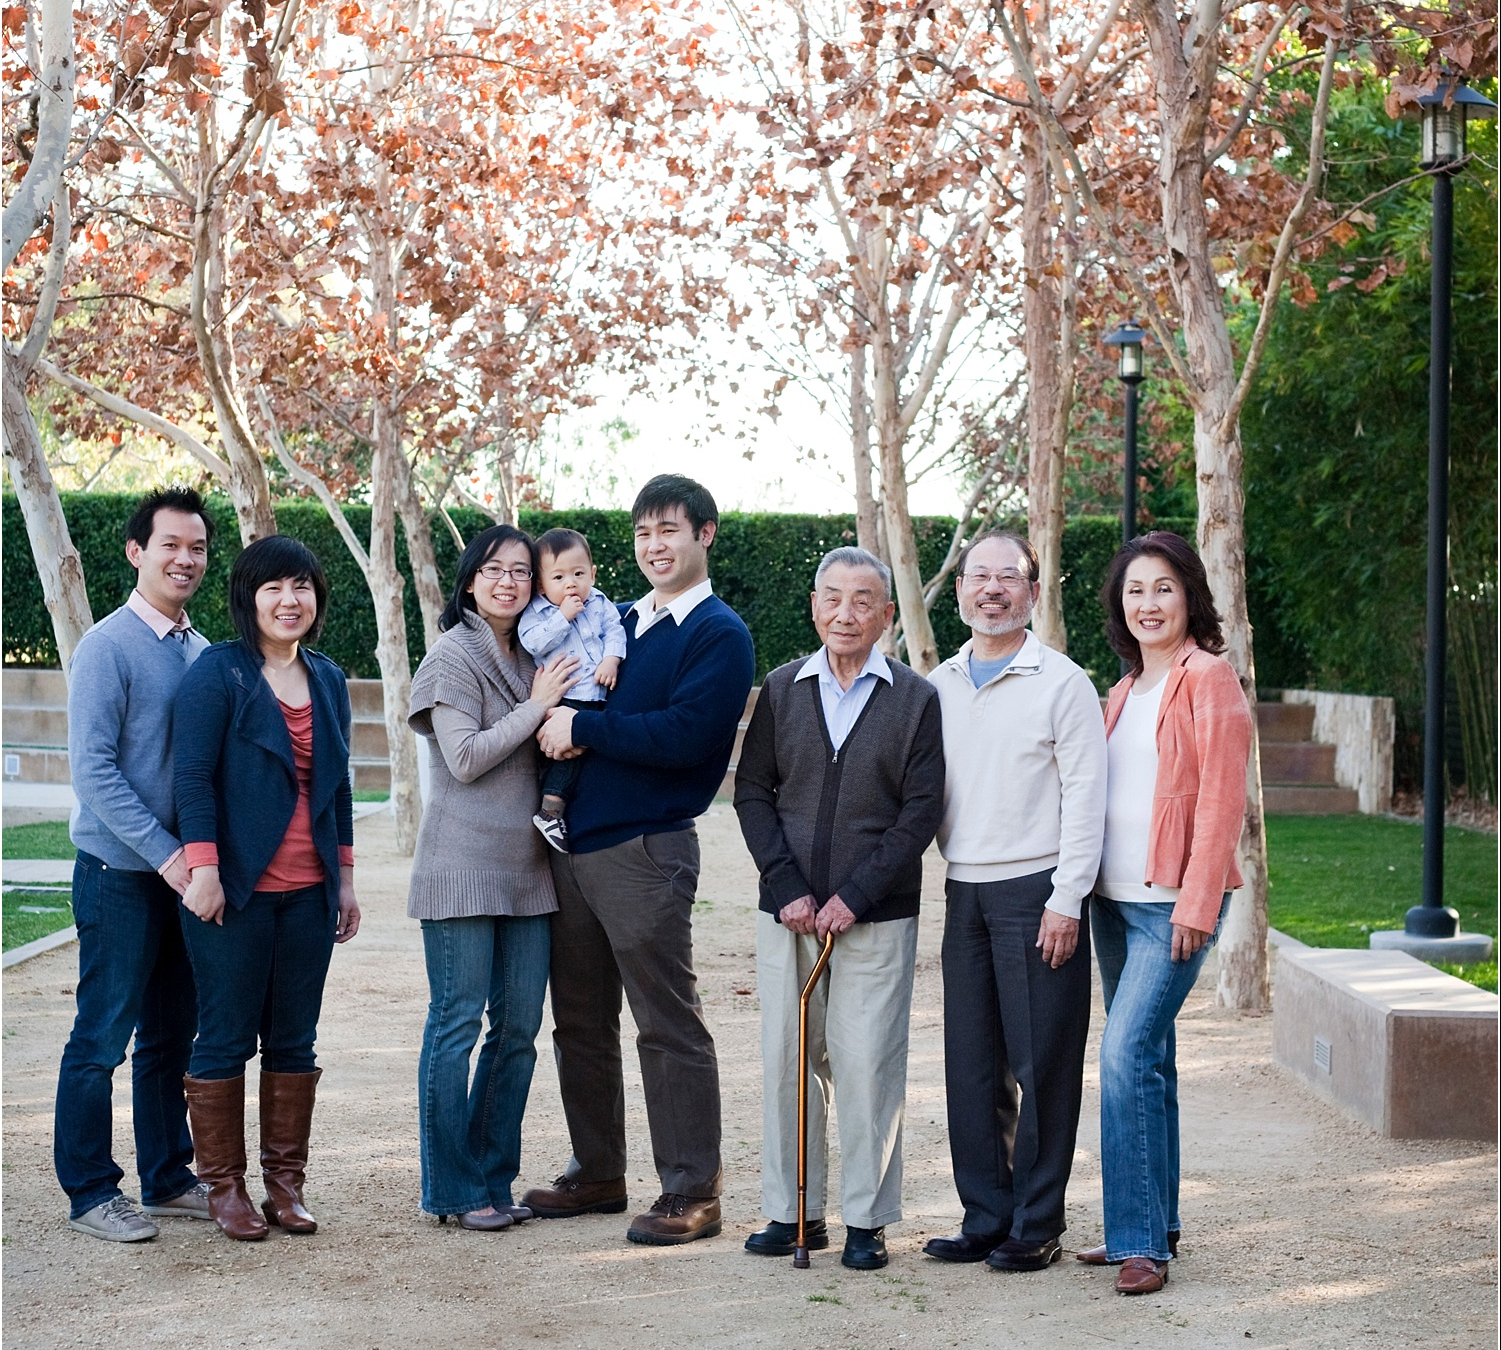 tips for posing large families and groups